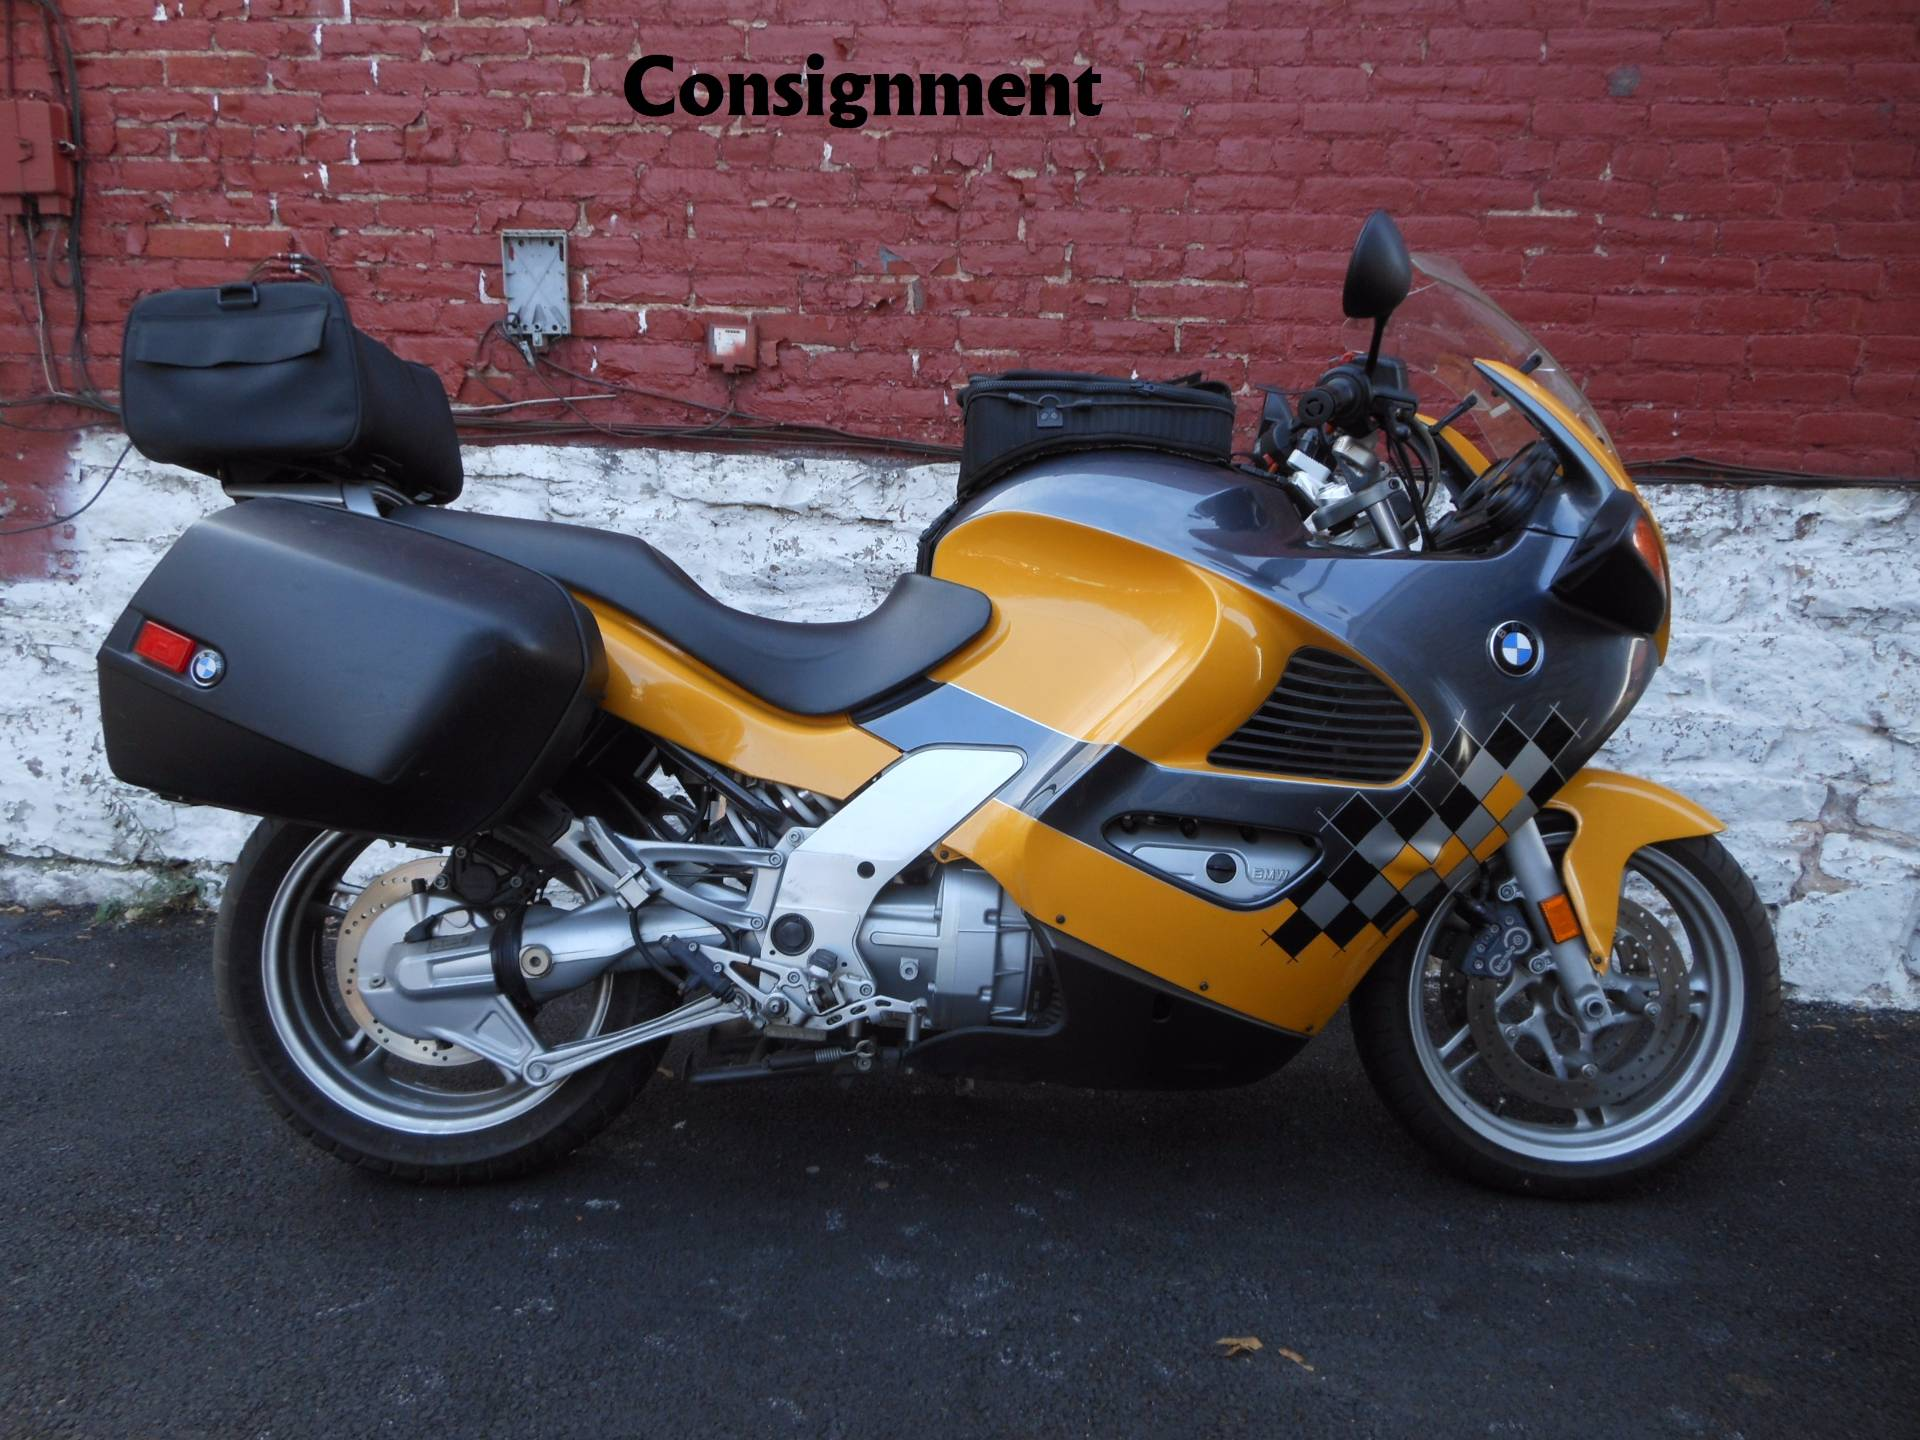 2001 Bmw K 1200 Rs Motorcycles Port Clinton Pennsylvania